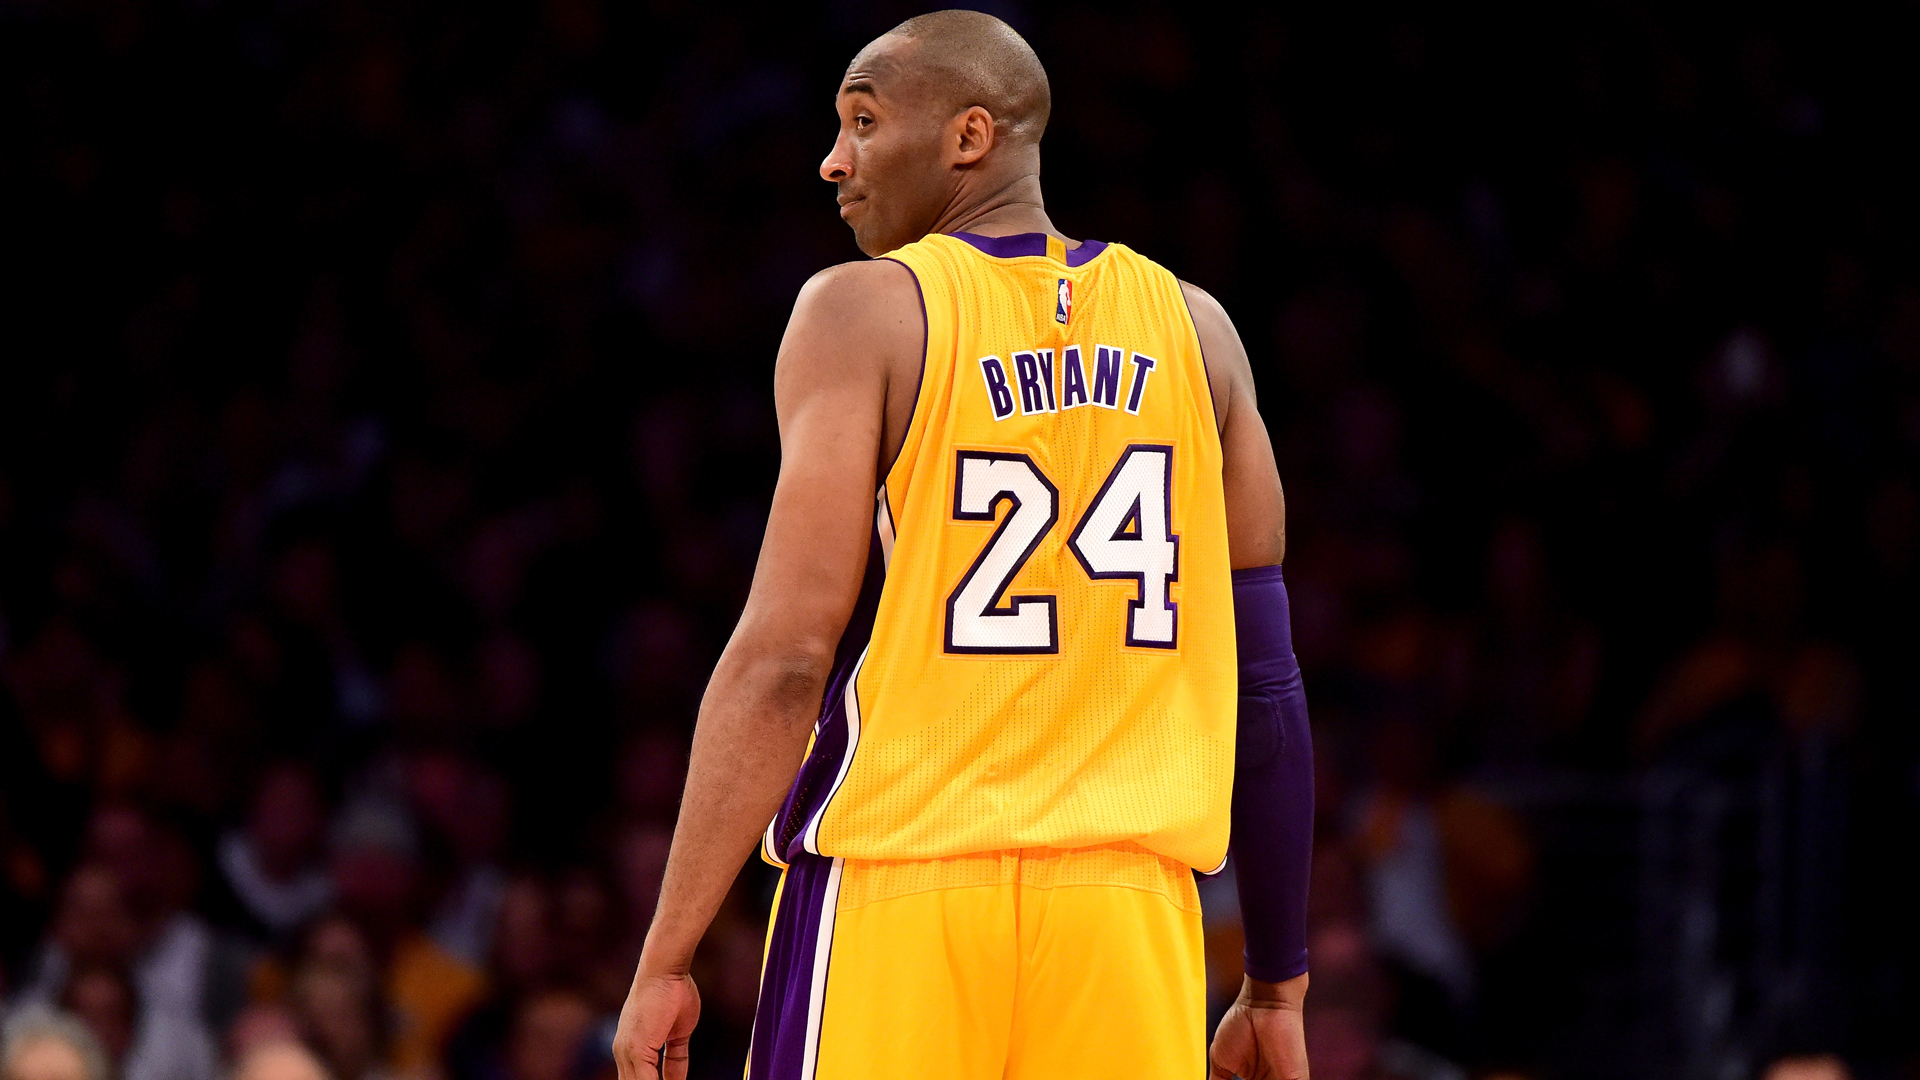 Lakers set record by selling $1 2 million worth of Kobe Bryant